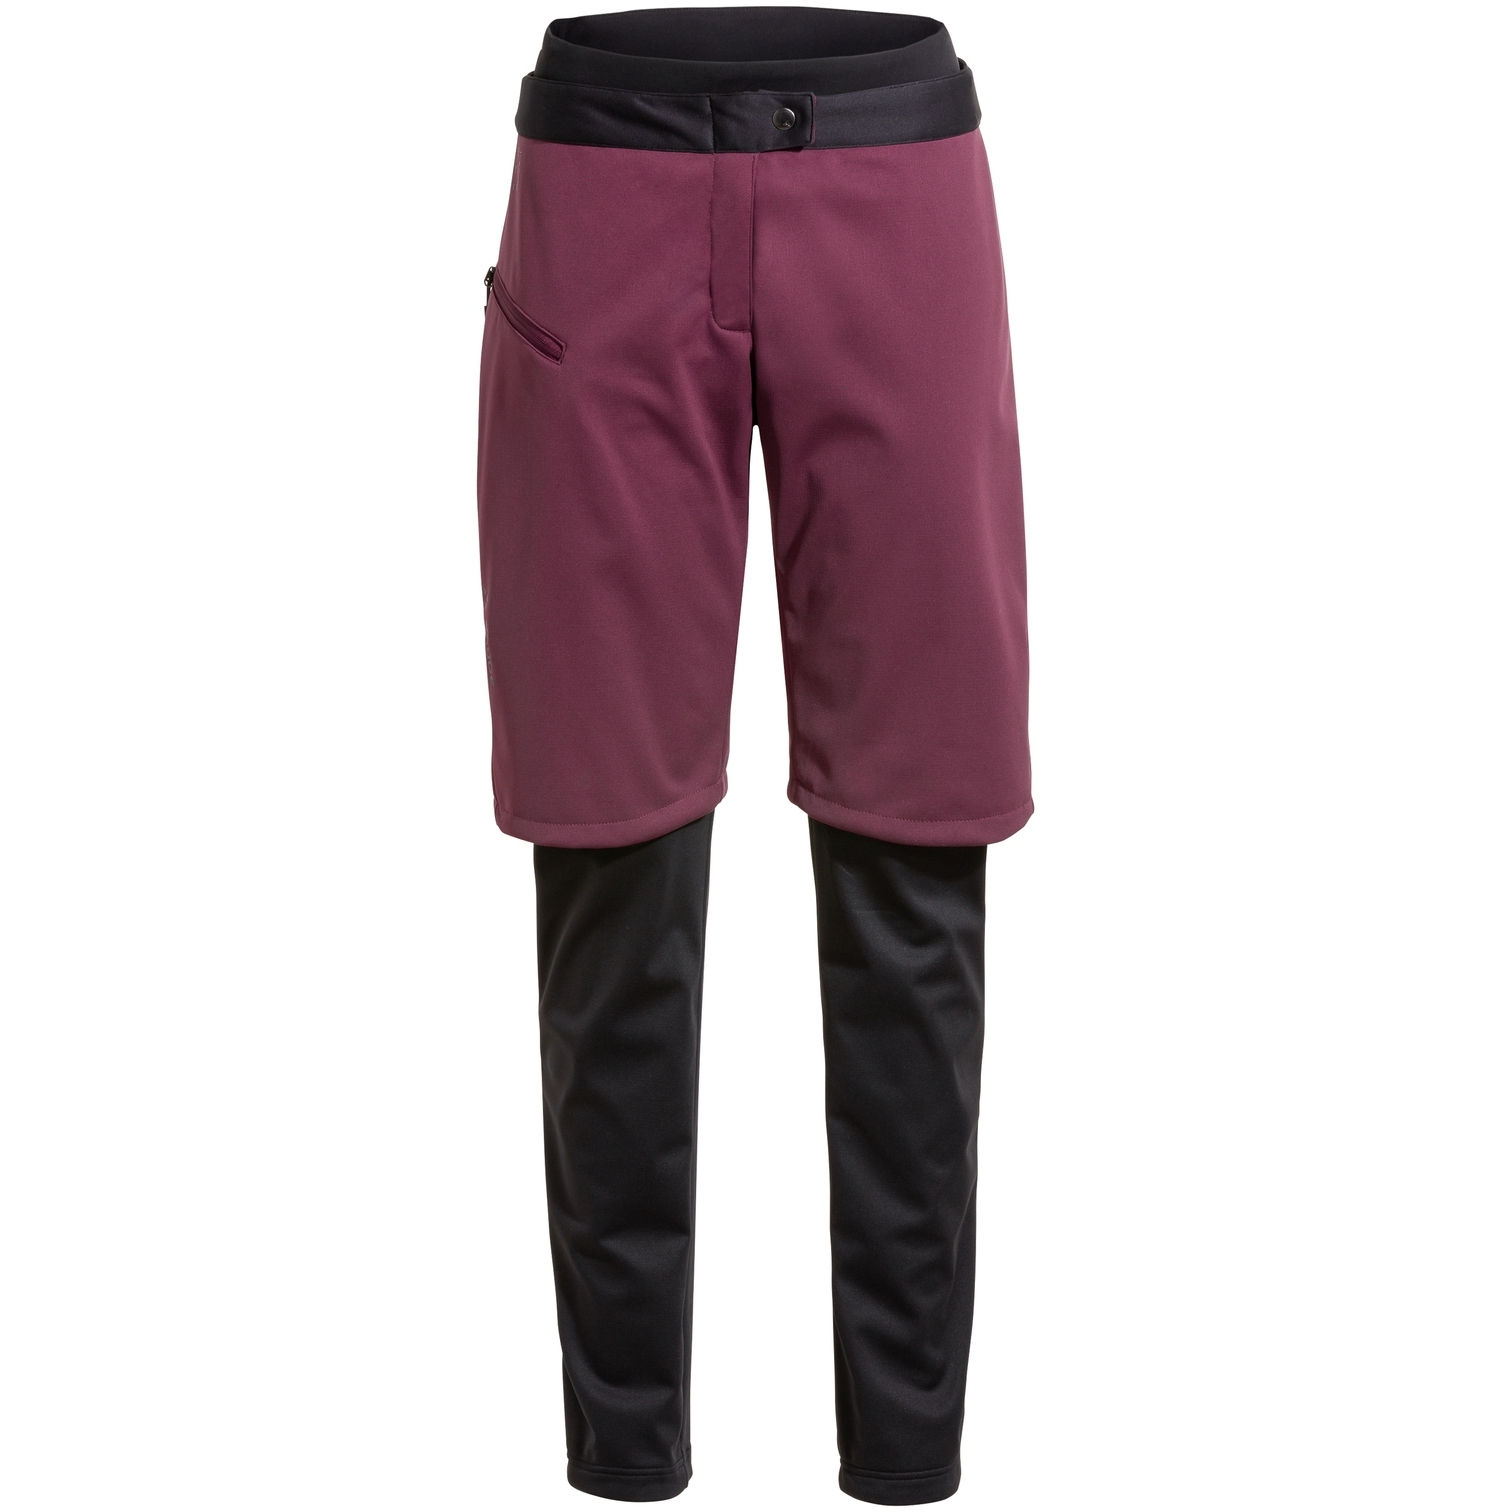 Vaude Women's All Year Moab 3in1 Pants w/o SC - cassis